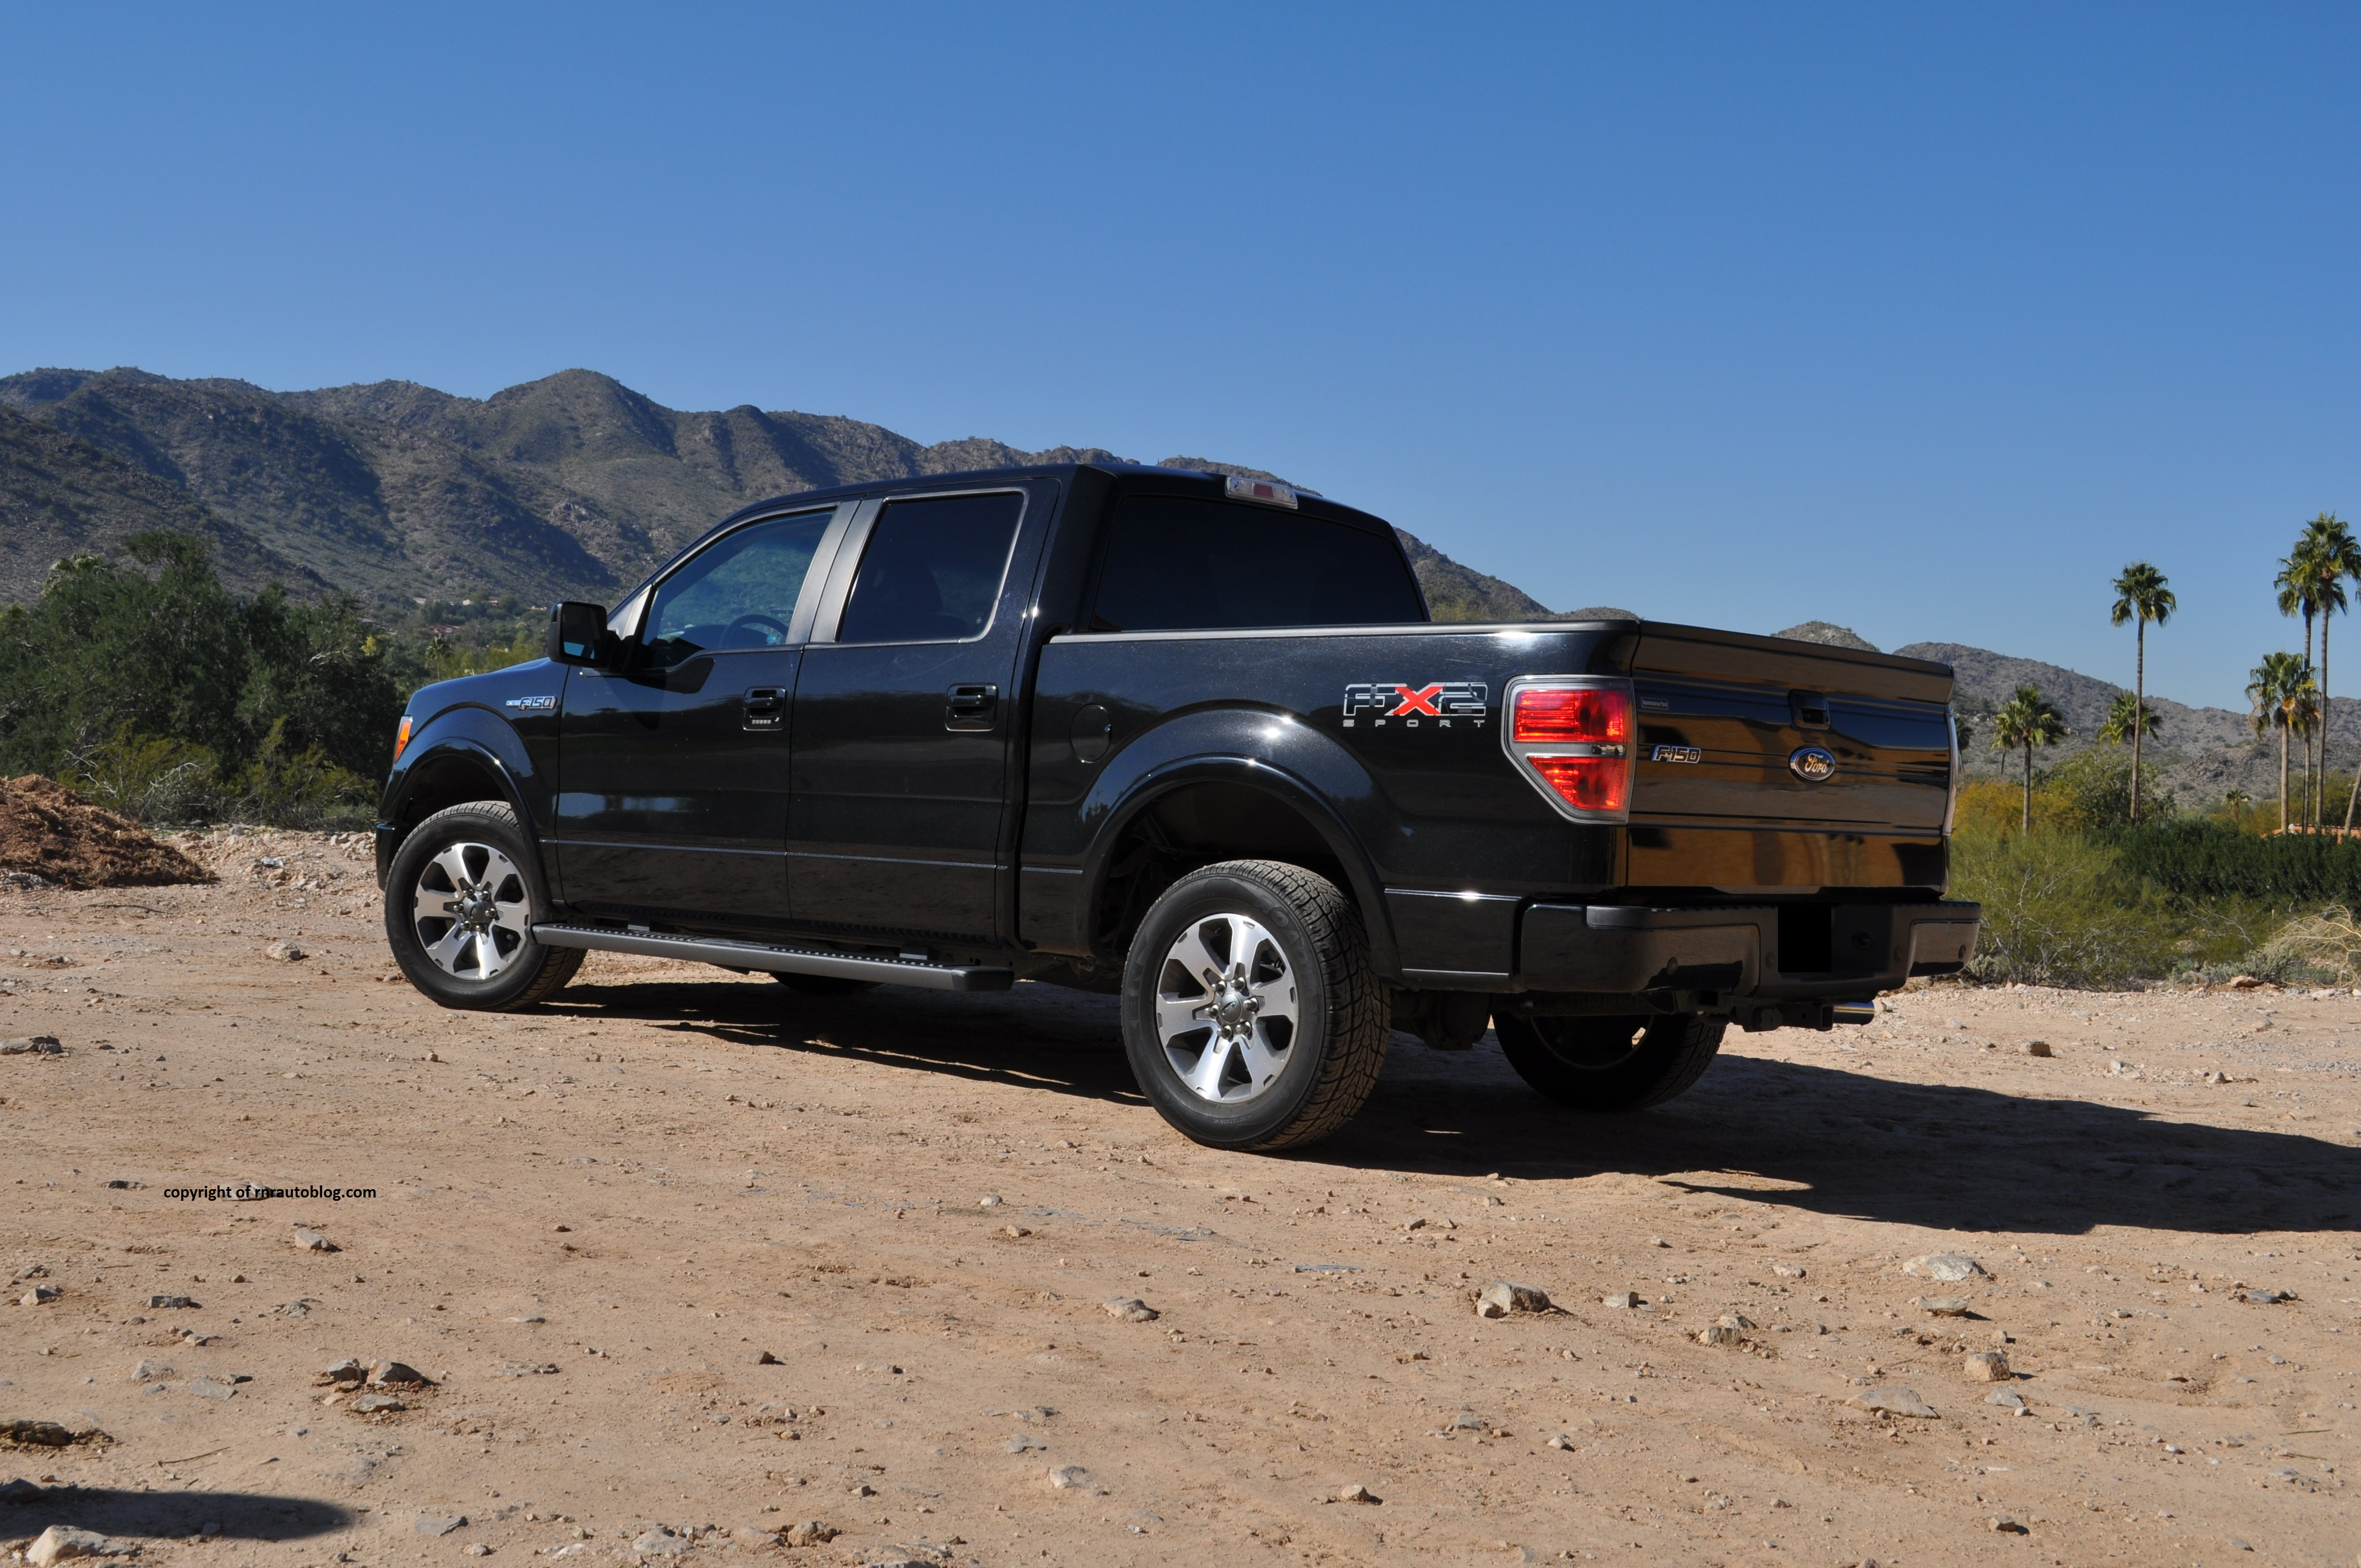 2010 ford f150 fx2 sport review rnr automotive blog. Black Bedroom Furniture Sets. Home Design Ideas